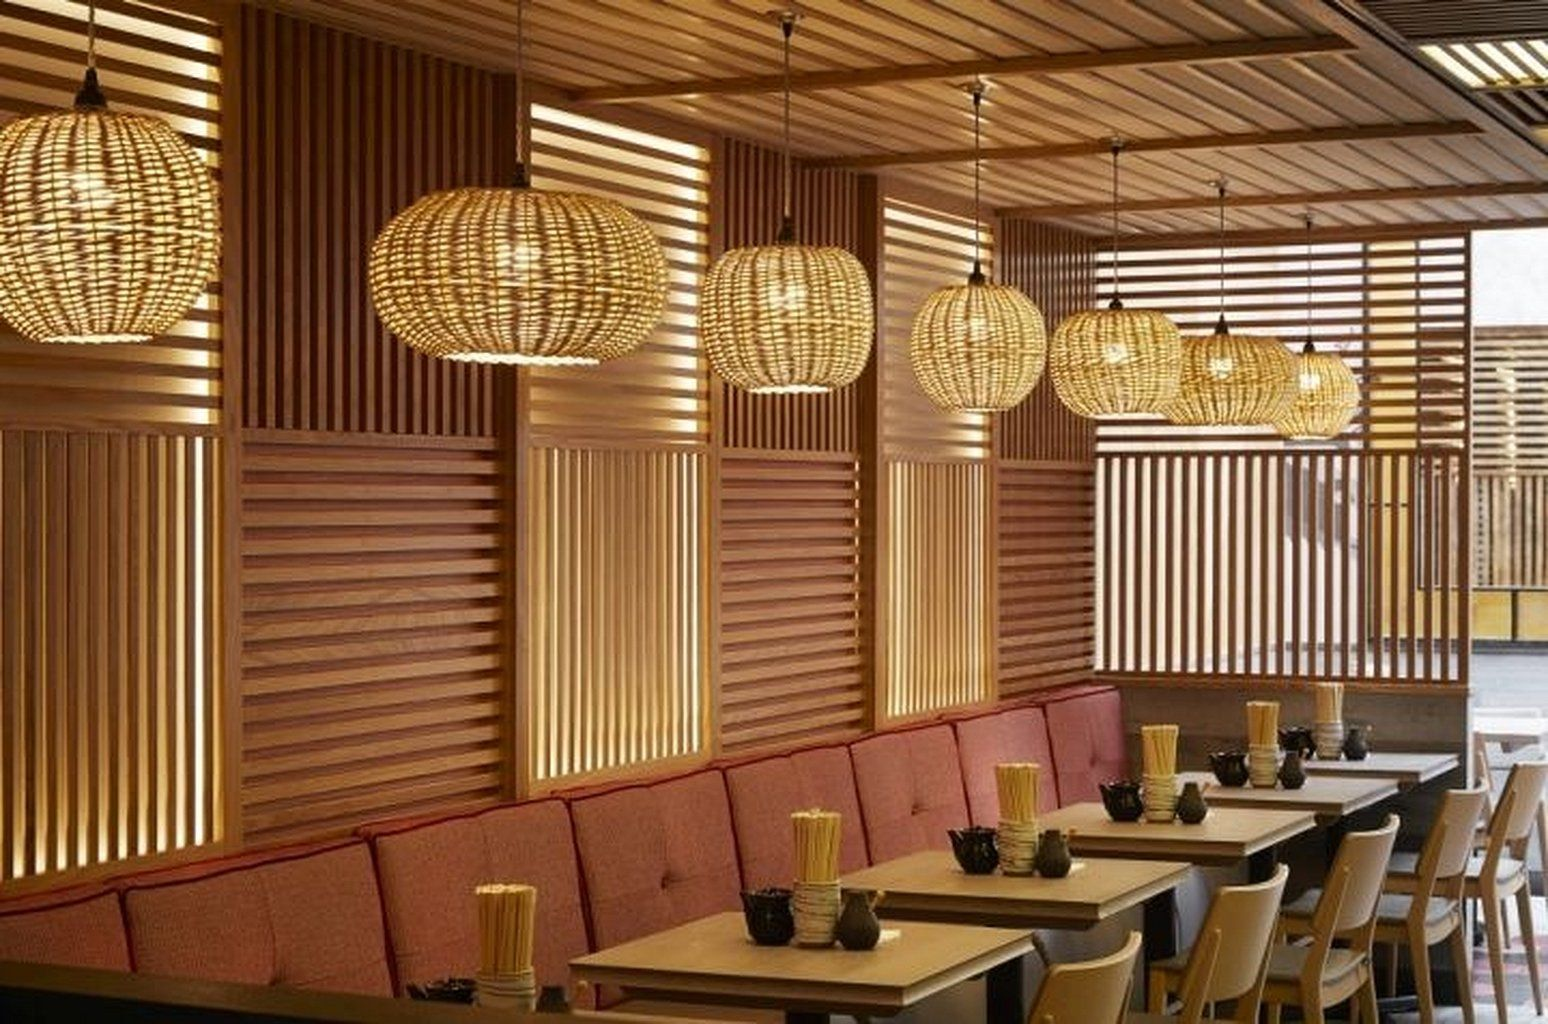 97 Best Lounge Bar Design Images Ideas Https Www Mobmasker Com Best Lounge Bar Design Bar Design Restaurant Japanese Restaurant Interior Restaurant Design